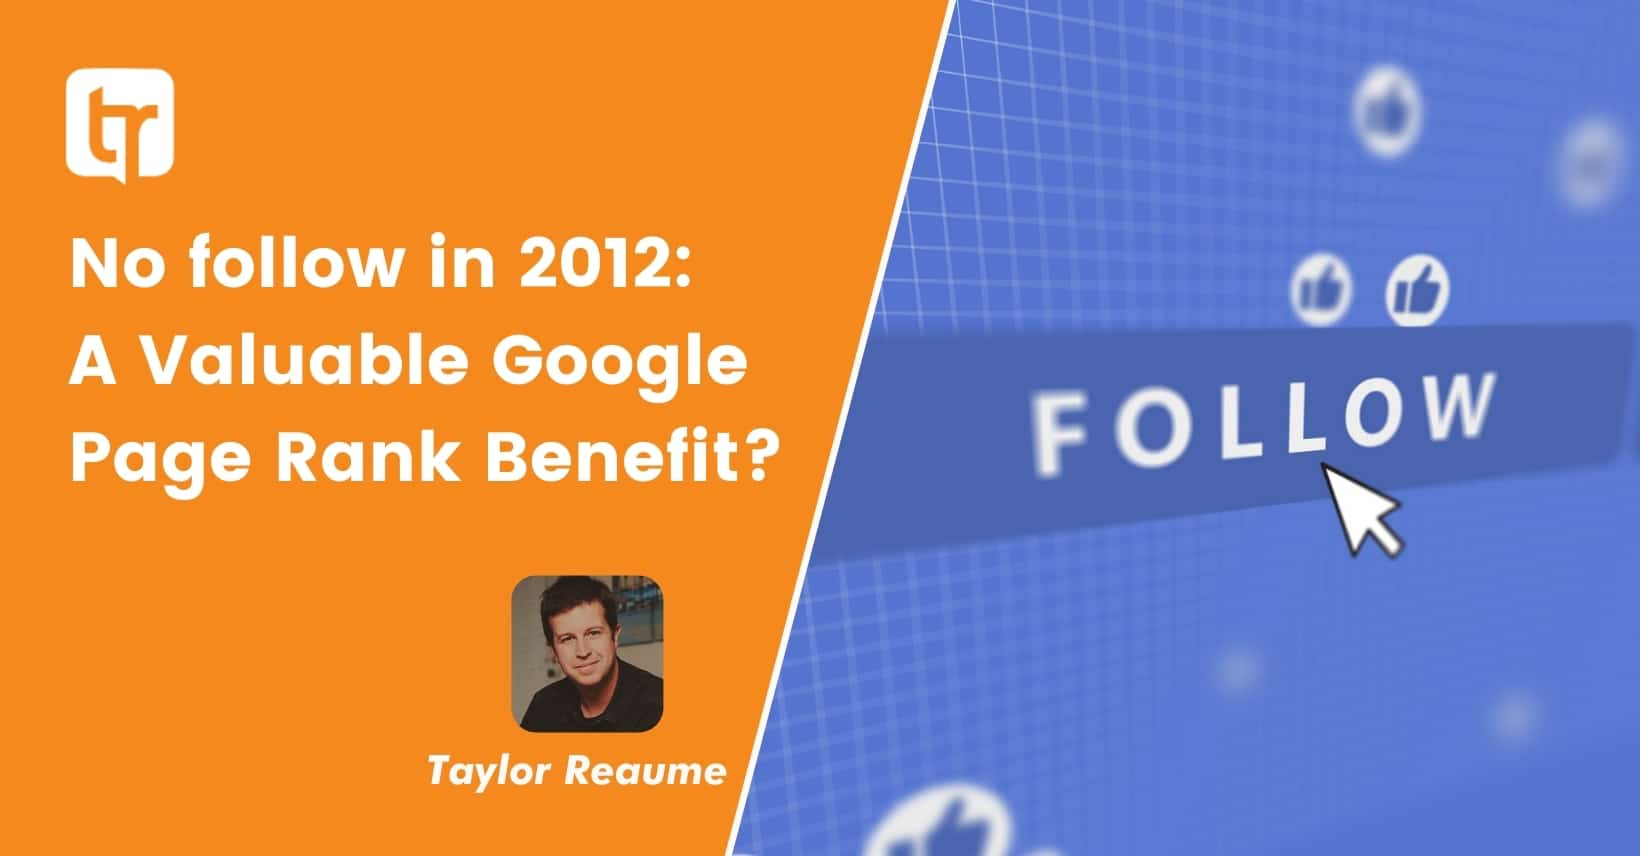 No follow in 2012: A Valuable Google Page Rank Benefit?